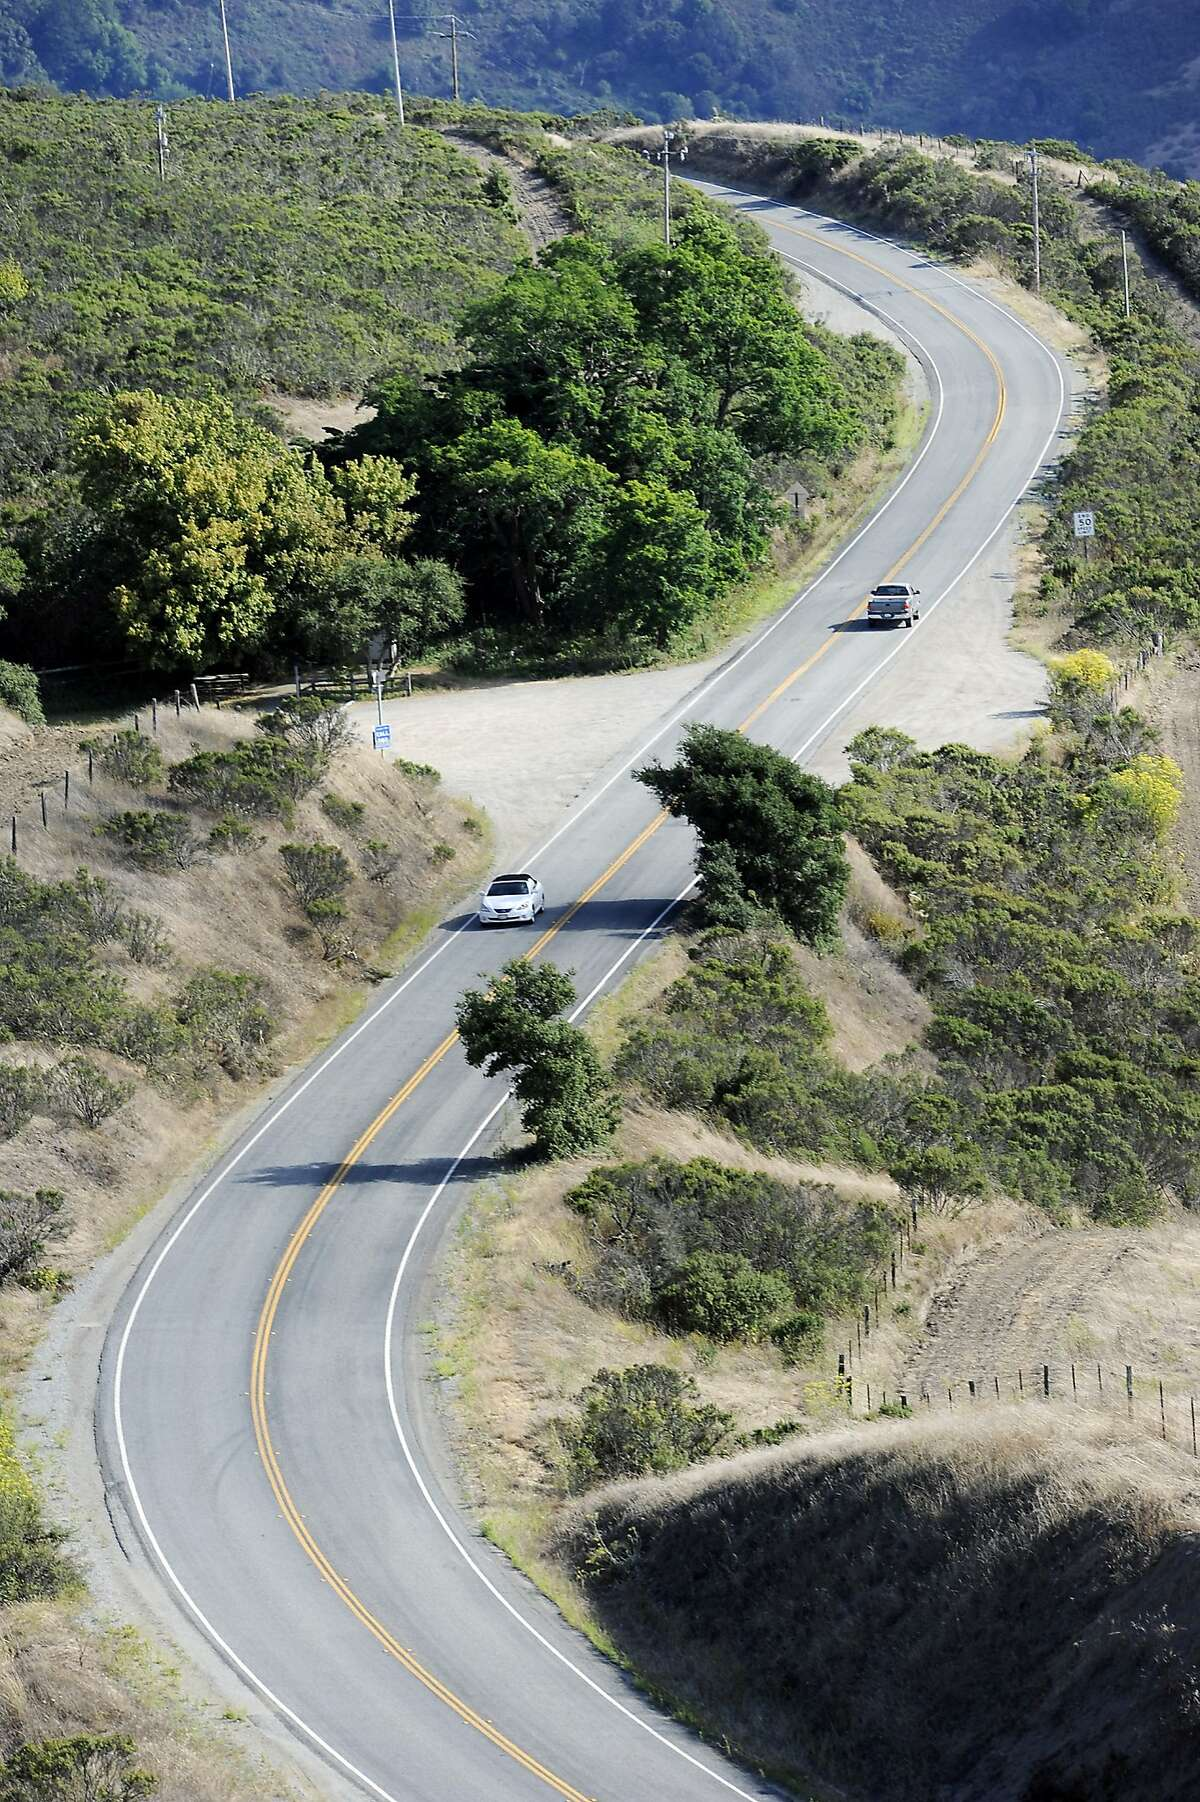 Cars pass along Sandhill Road as it winds past the Windy Hill Open Preserve in Portola Valley, CA Monday, August 10, 2015.